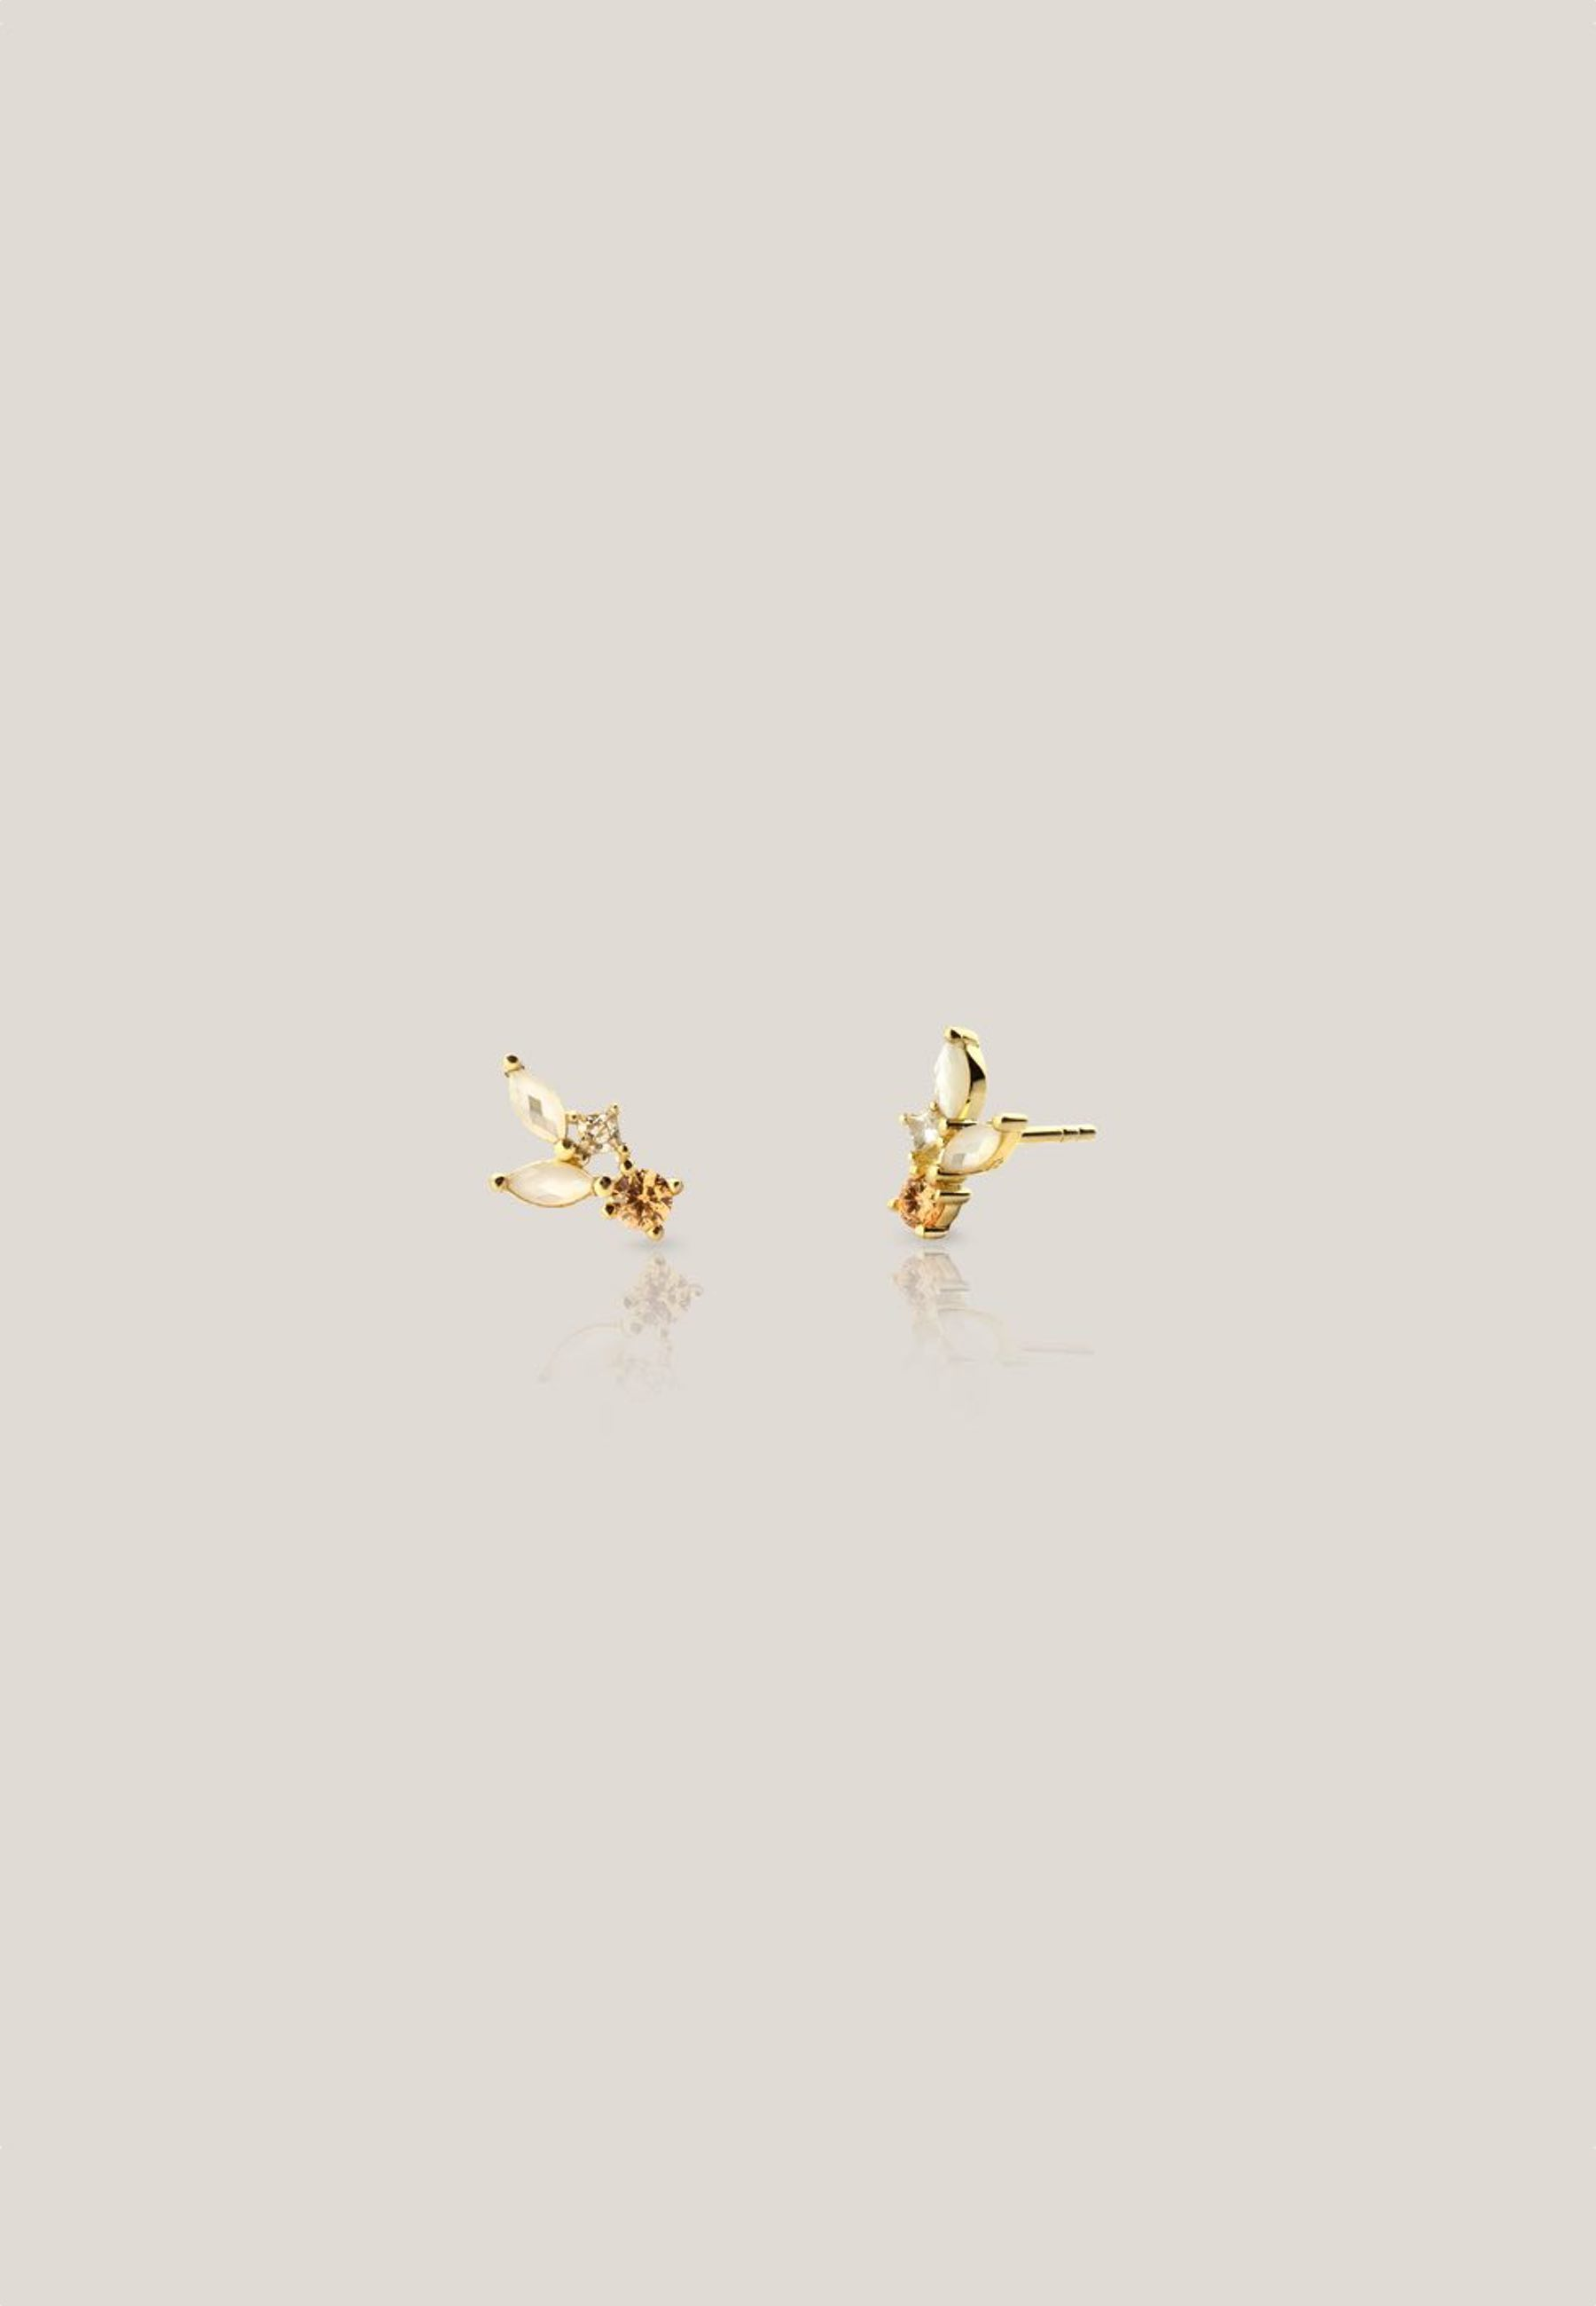 CLOUD gold earrings